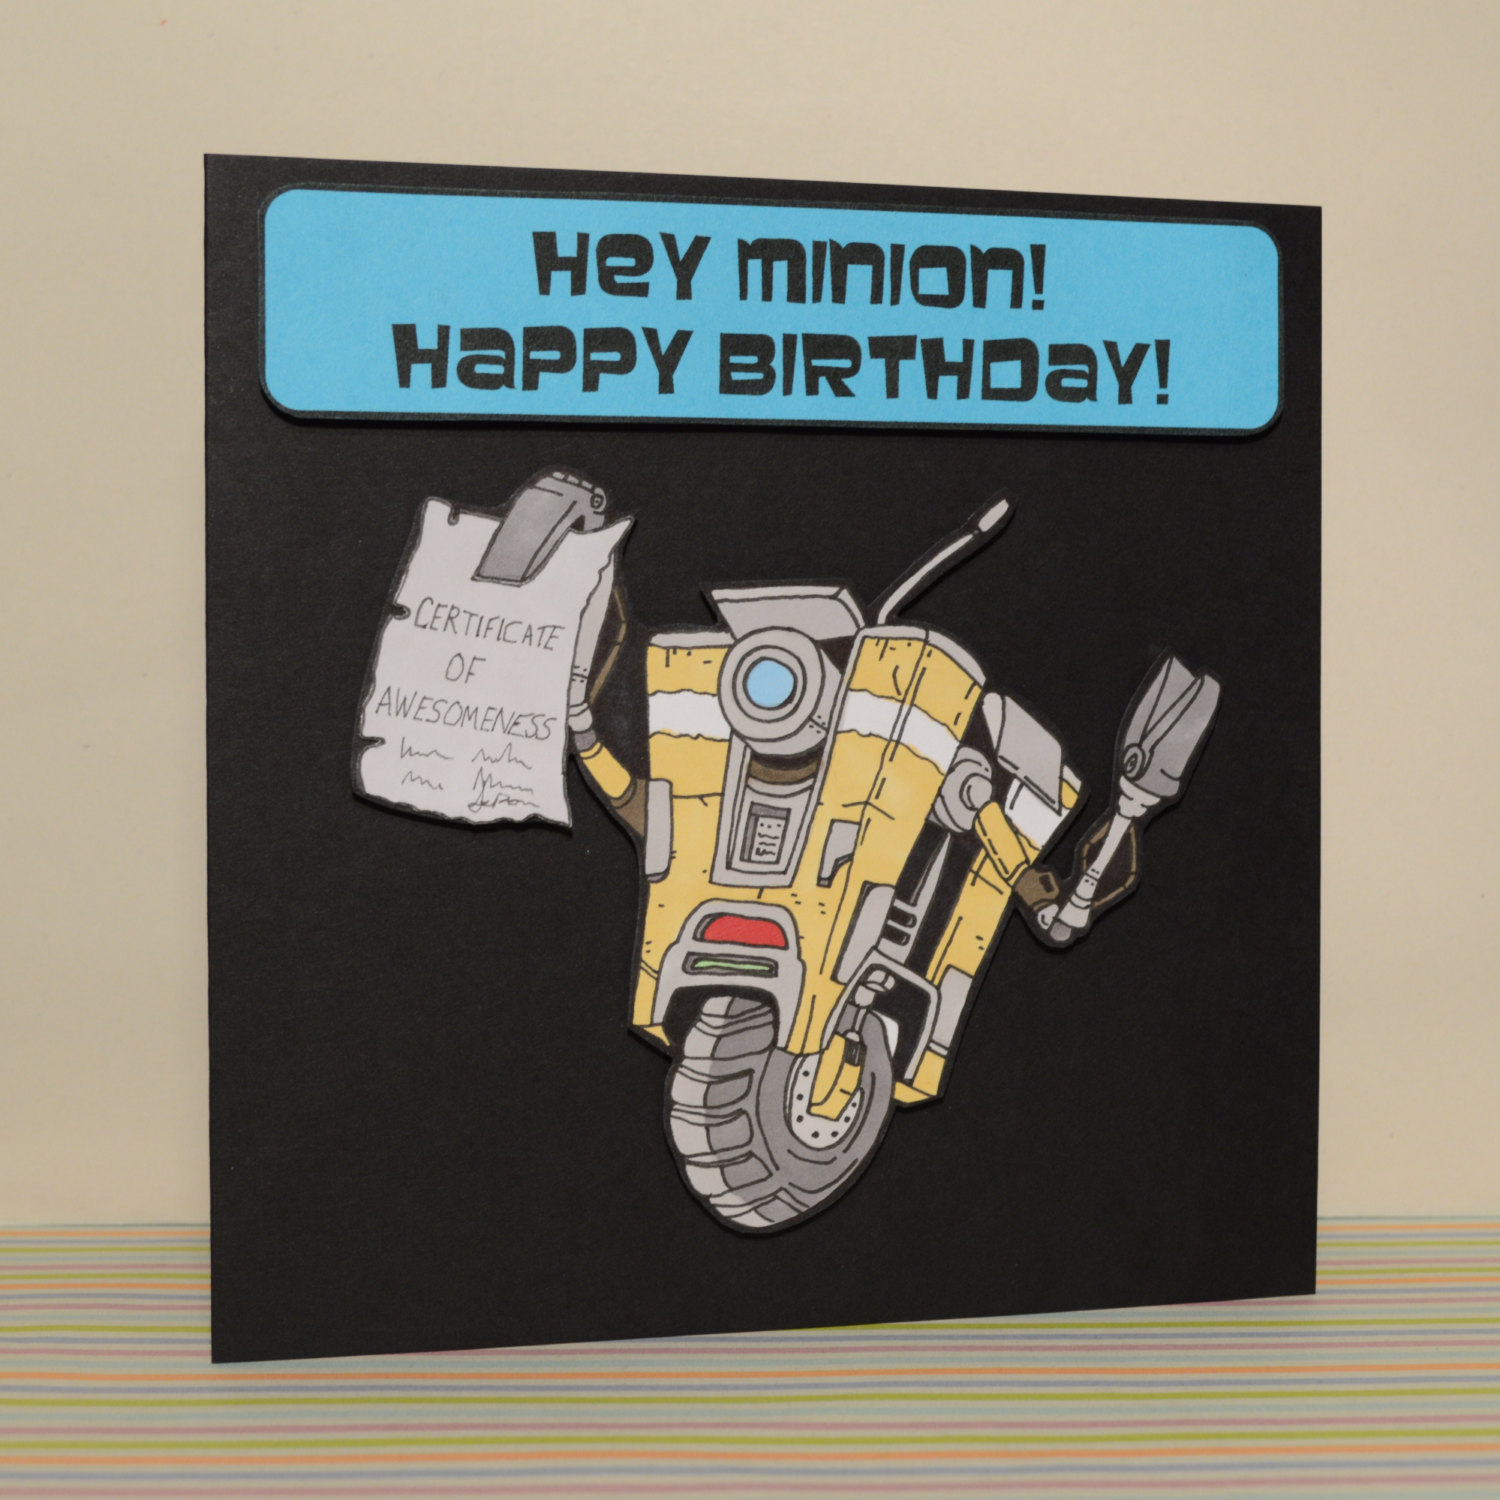 borderlands birthday card ; legendary-loot-claptrap-greeting-card-hey-minion-happy-birthday